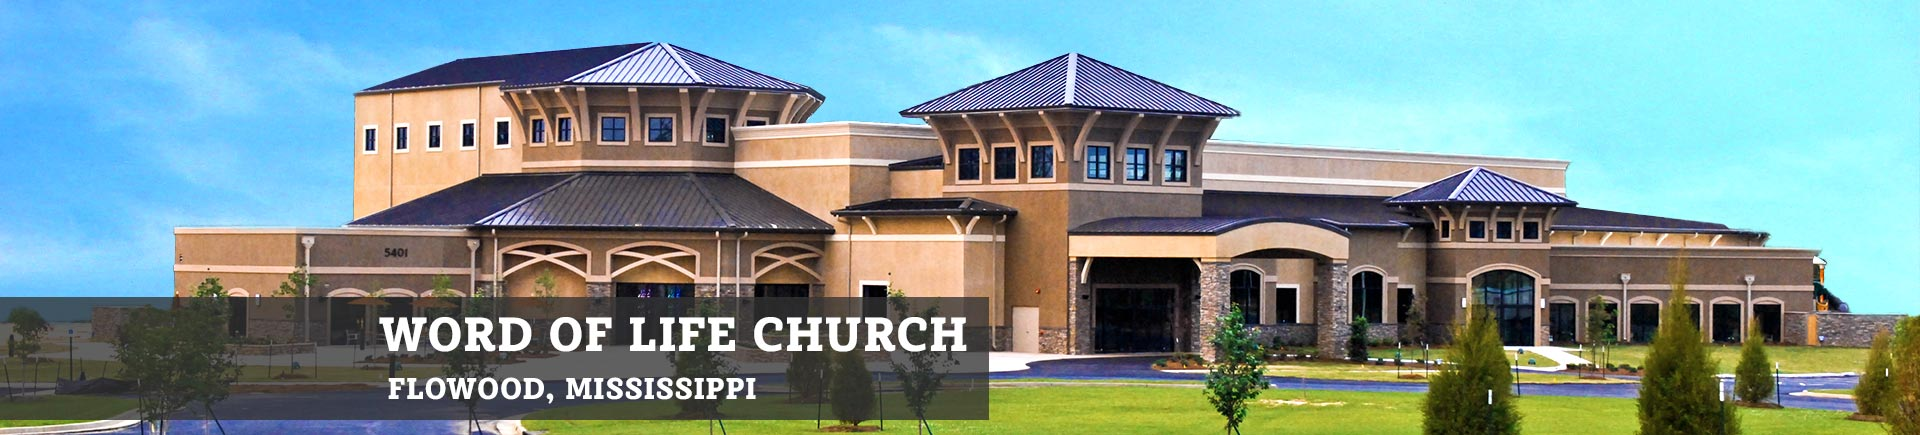 Churches by Daniels - Church Design & Construction